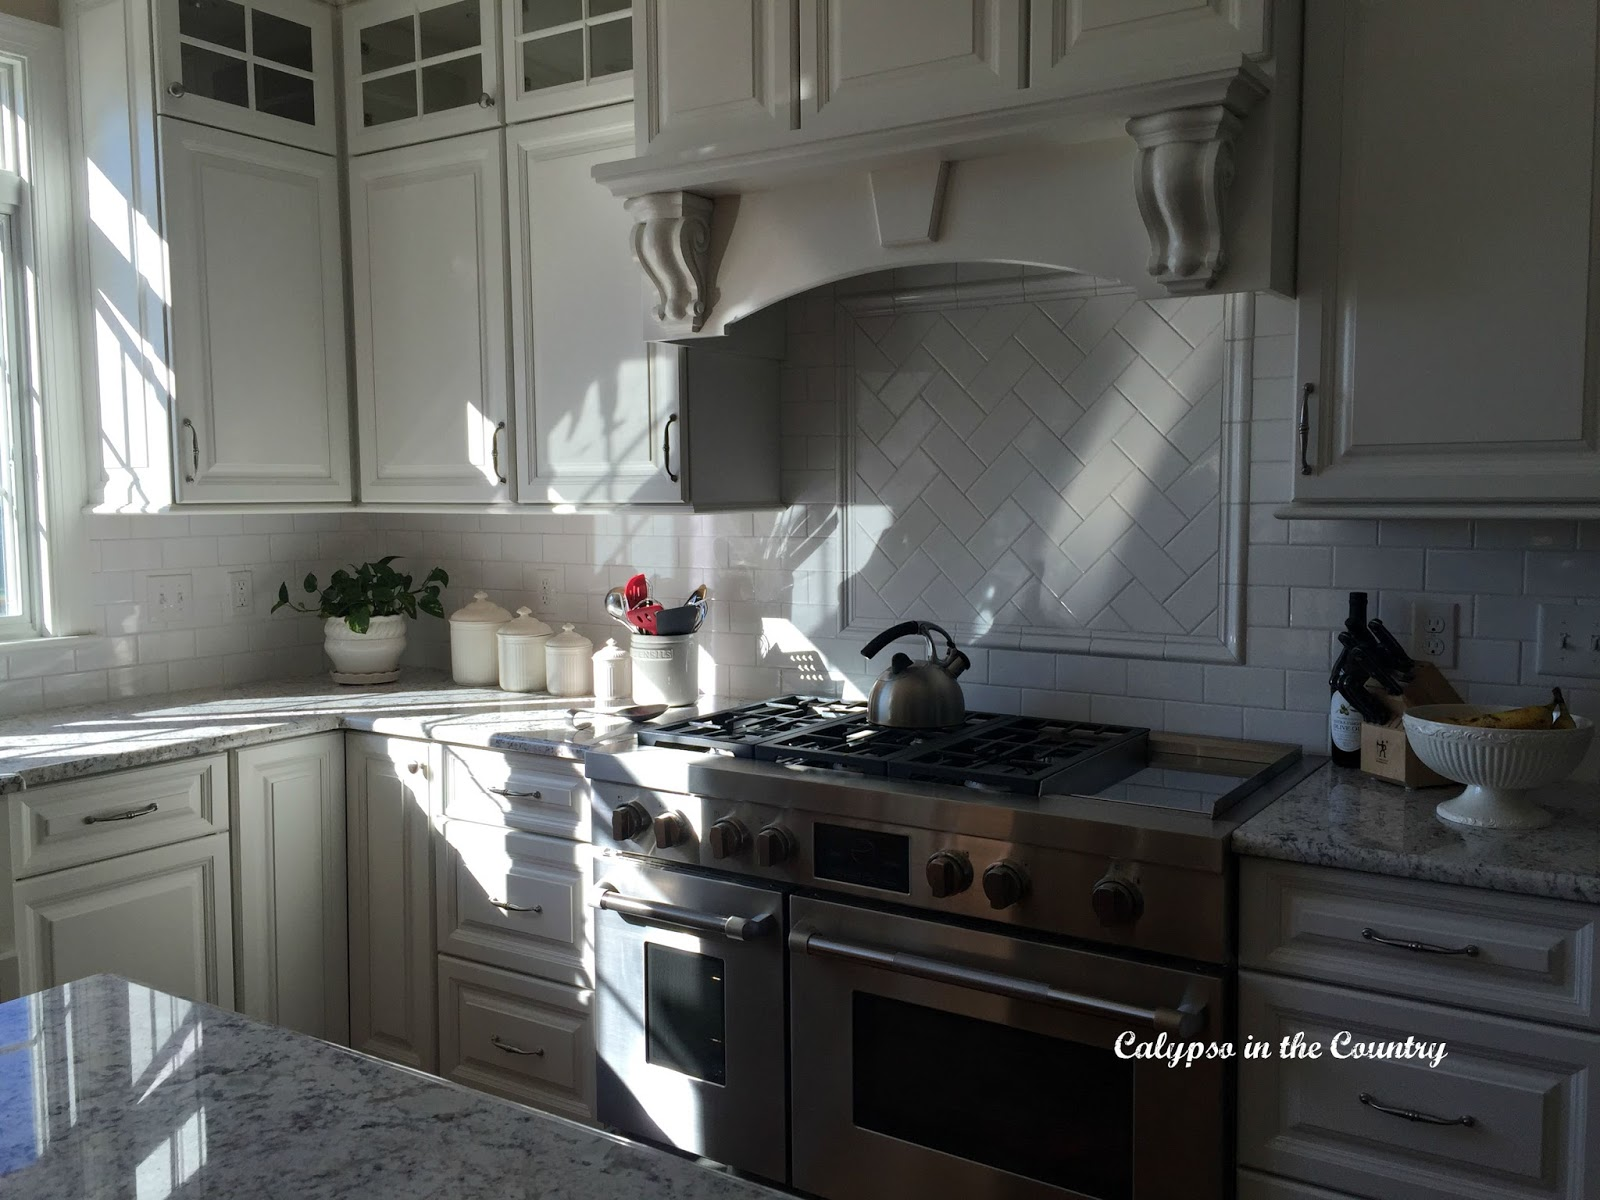 Jenn Air Range and New White Kitchen Reveal